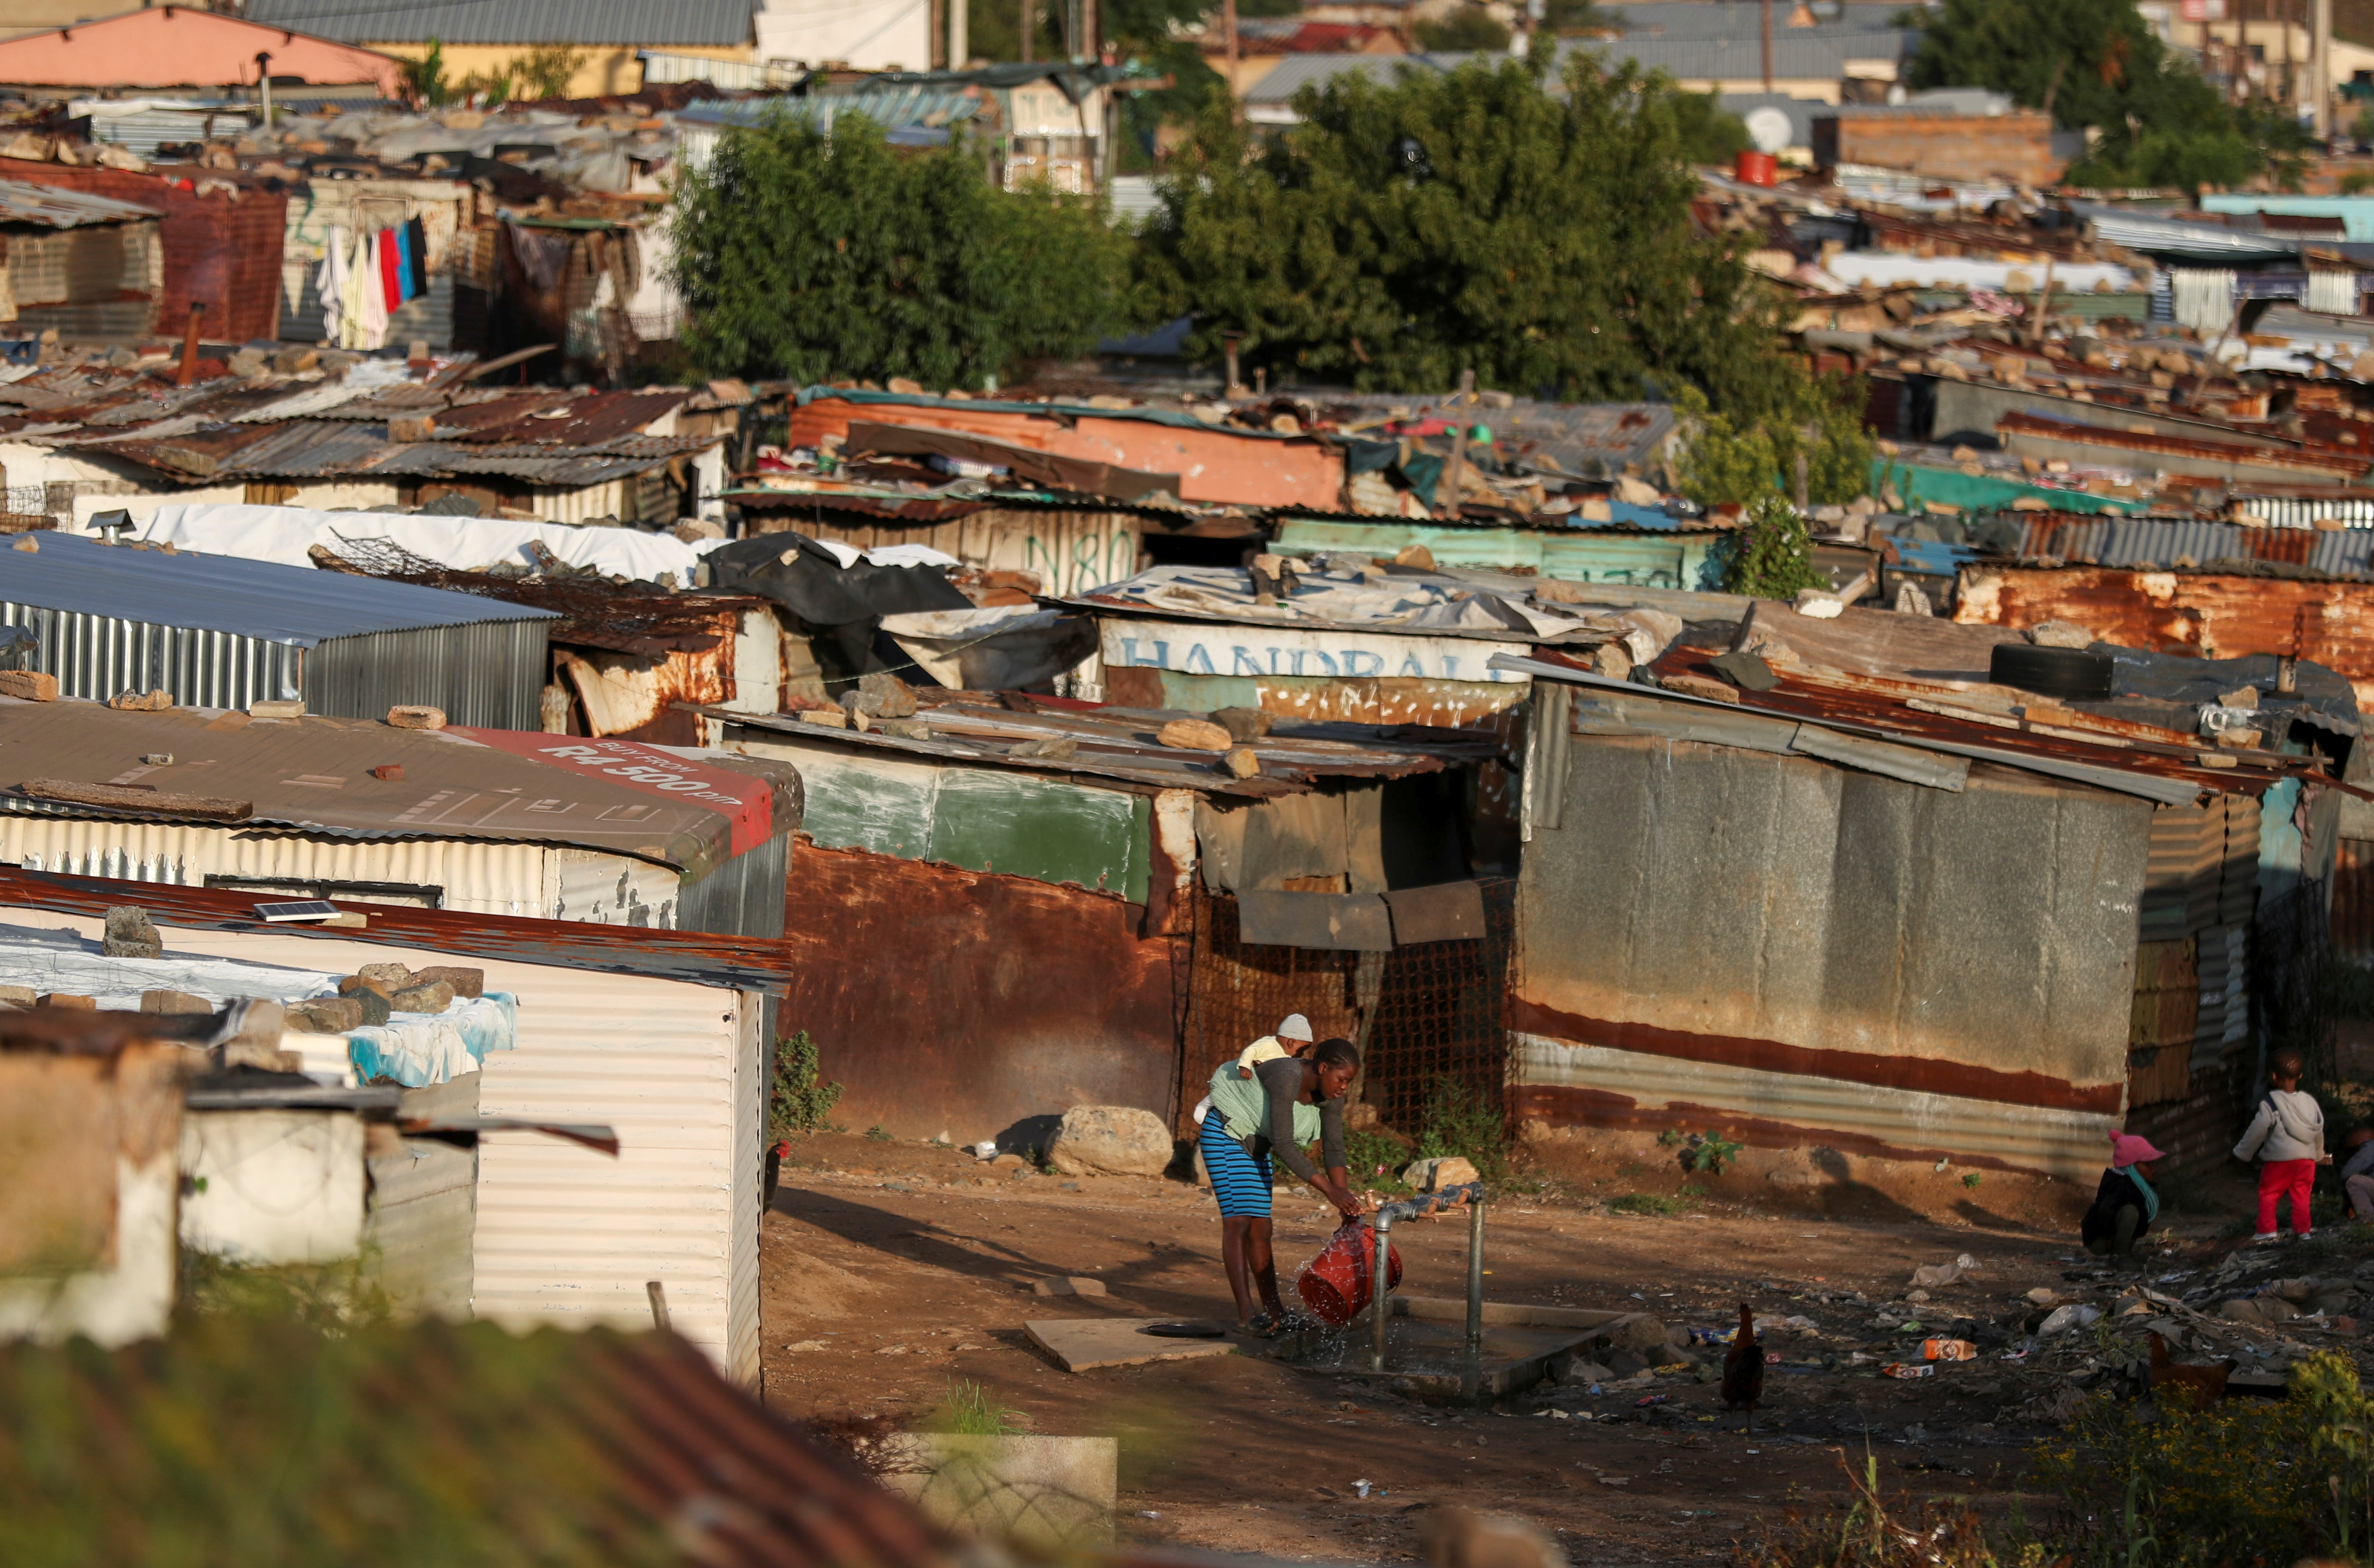 A woman with a baby on her back collects water at an informal settlement as the coronavirus disease (COVID-19) lockdown regulations ease in Soweto, South Africa, April 7, 2021. REUTERS/Siphiwe Sibeko